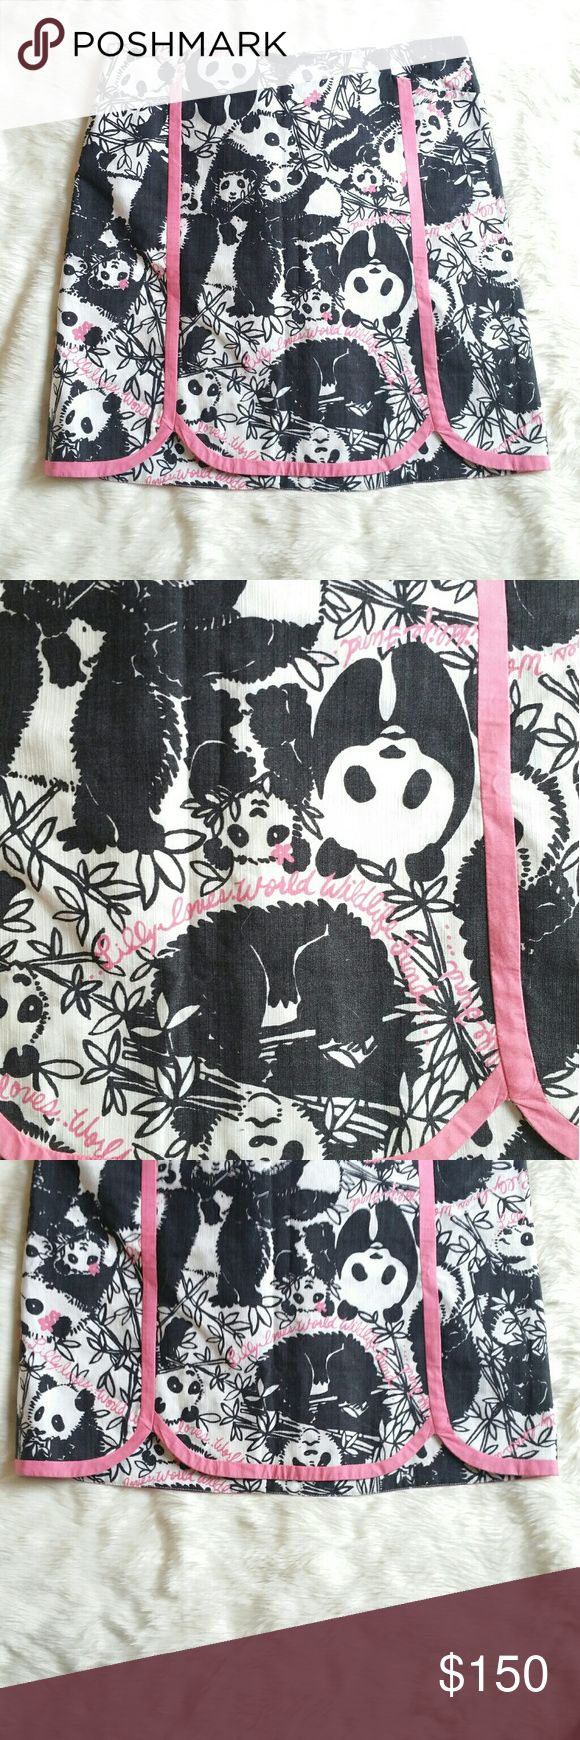 Lilly Pulitzer Pandamonium HTF WWF Skirt Excellent condition  No stains or holes  Hard to find print!   Beautiful skirt  A Lilly Pulitzer for the World Wildlife Federation  Has pockets and back zip closure with button.   Length is 19in  Waist flat from hip to hip is 16in Lilly Pulitzer Skirts